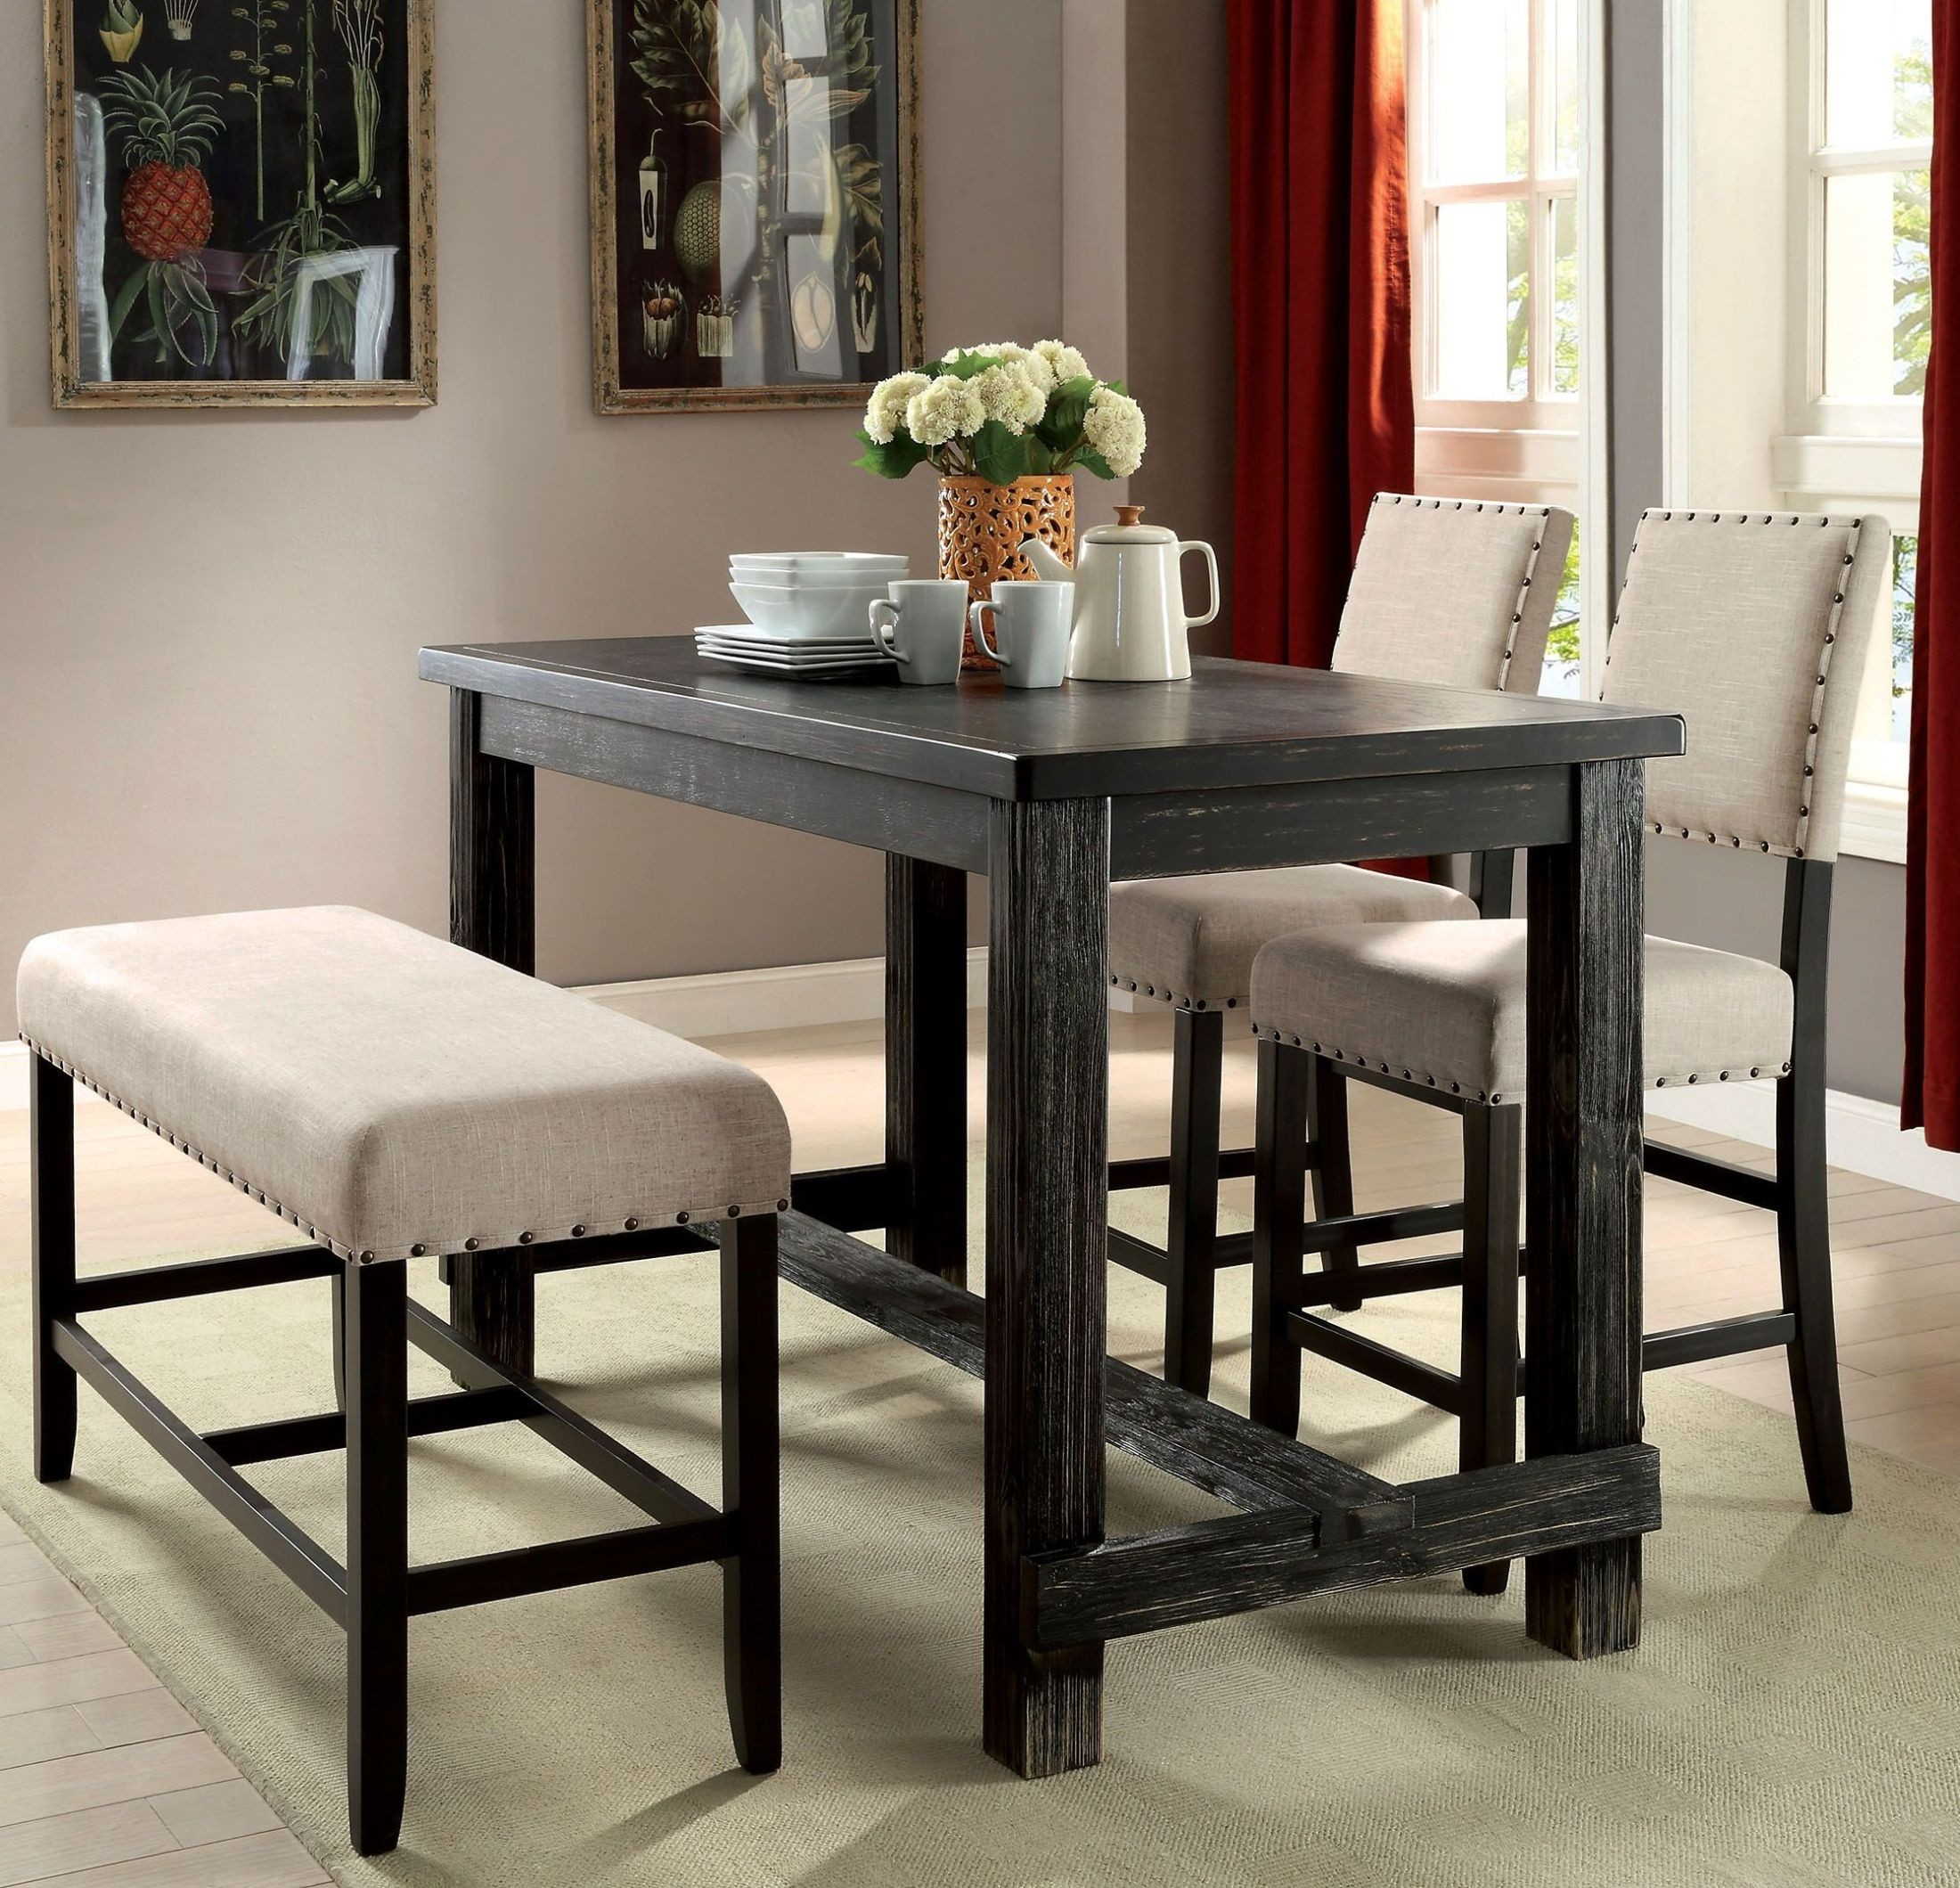 Sania Ii Antique Black Counter Height Dining Table ...